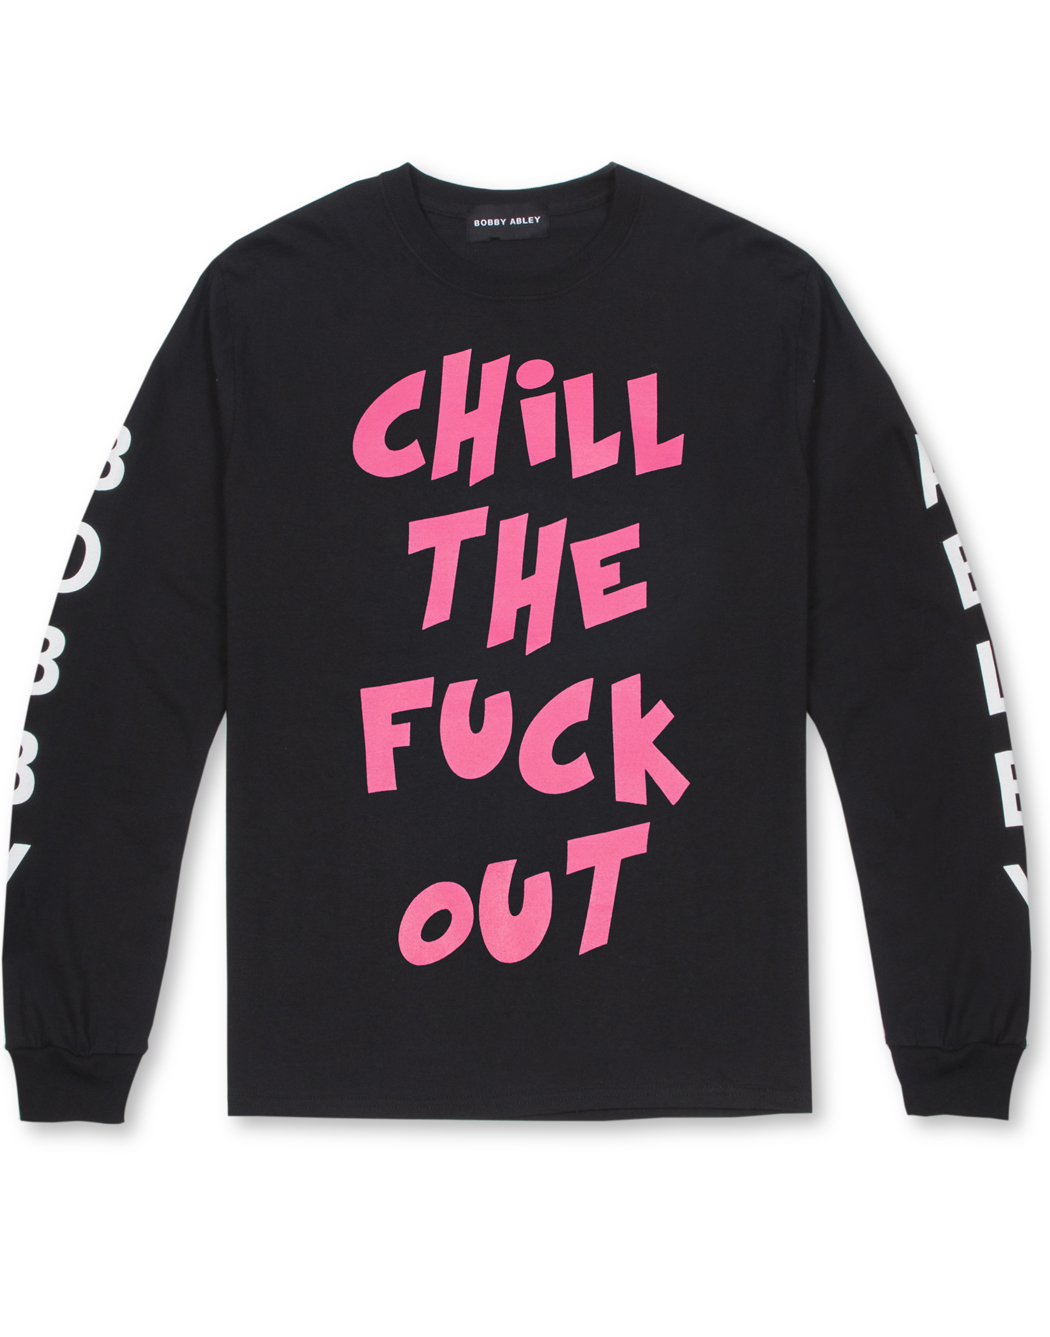 BOBBY MERCH - CHILL THE FU** OUT LONG SLEEVE